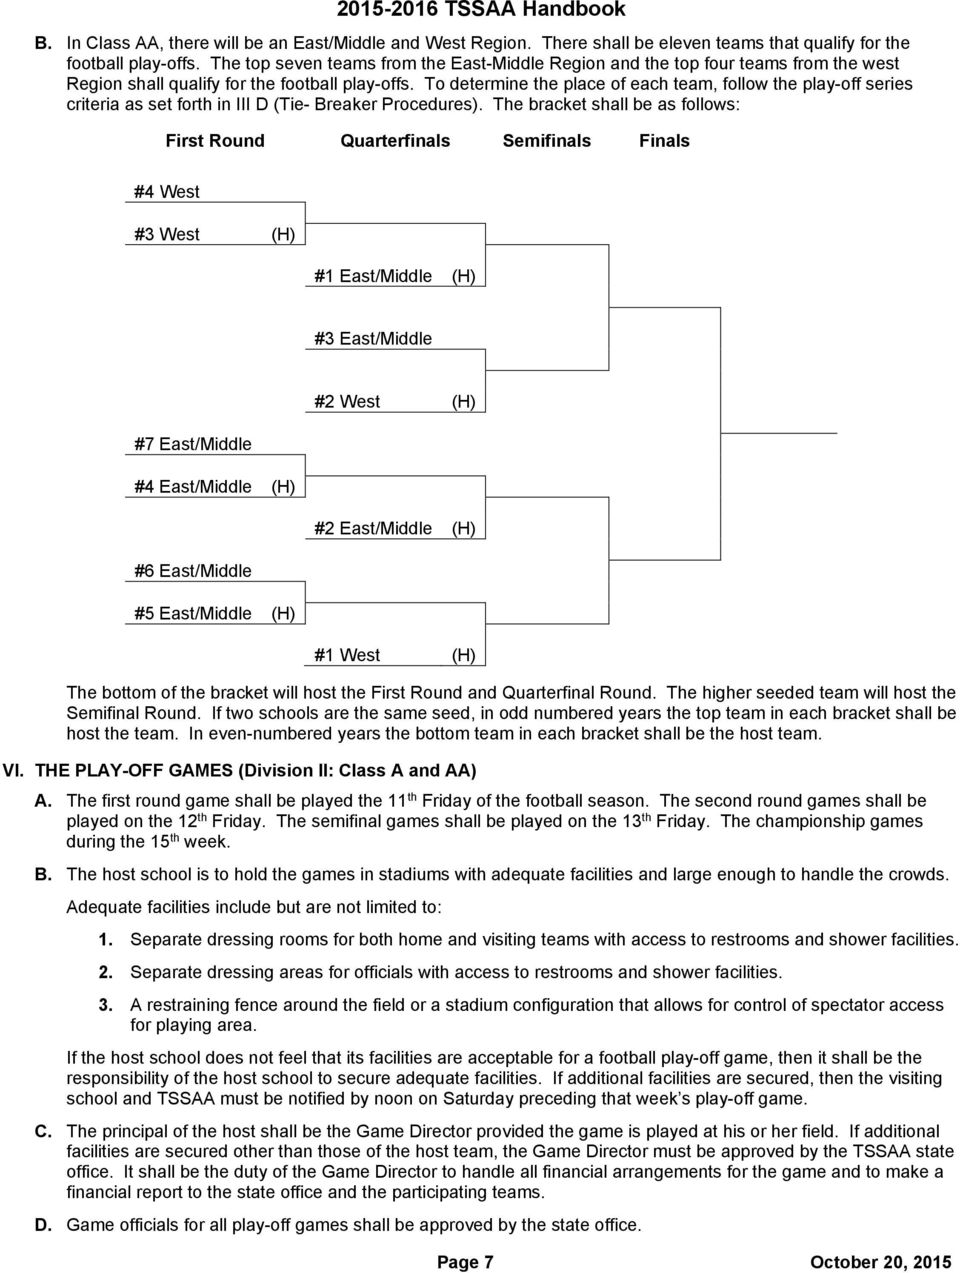 To determine the place of each team, follow the play-off series criteria as set forth in III D (Tie- Breaker Procedures).